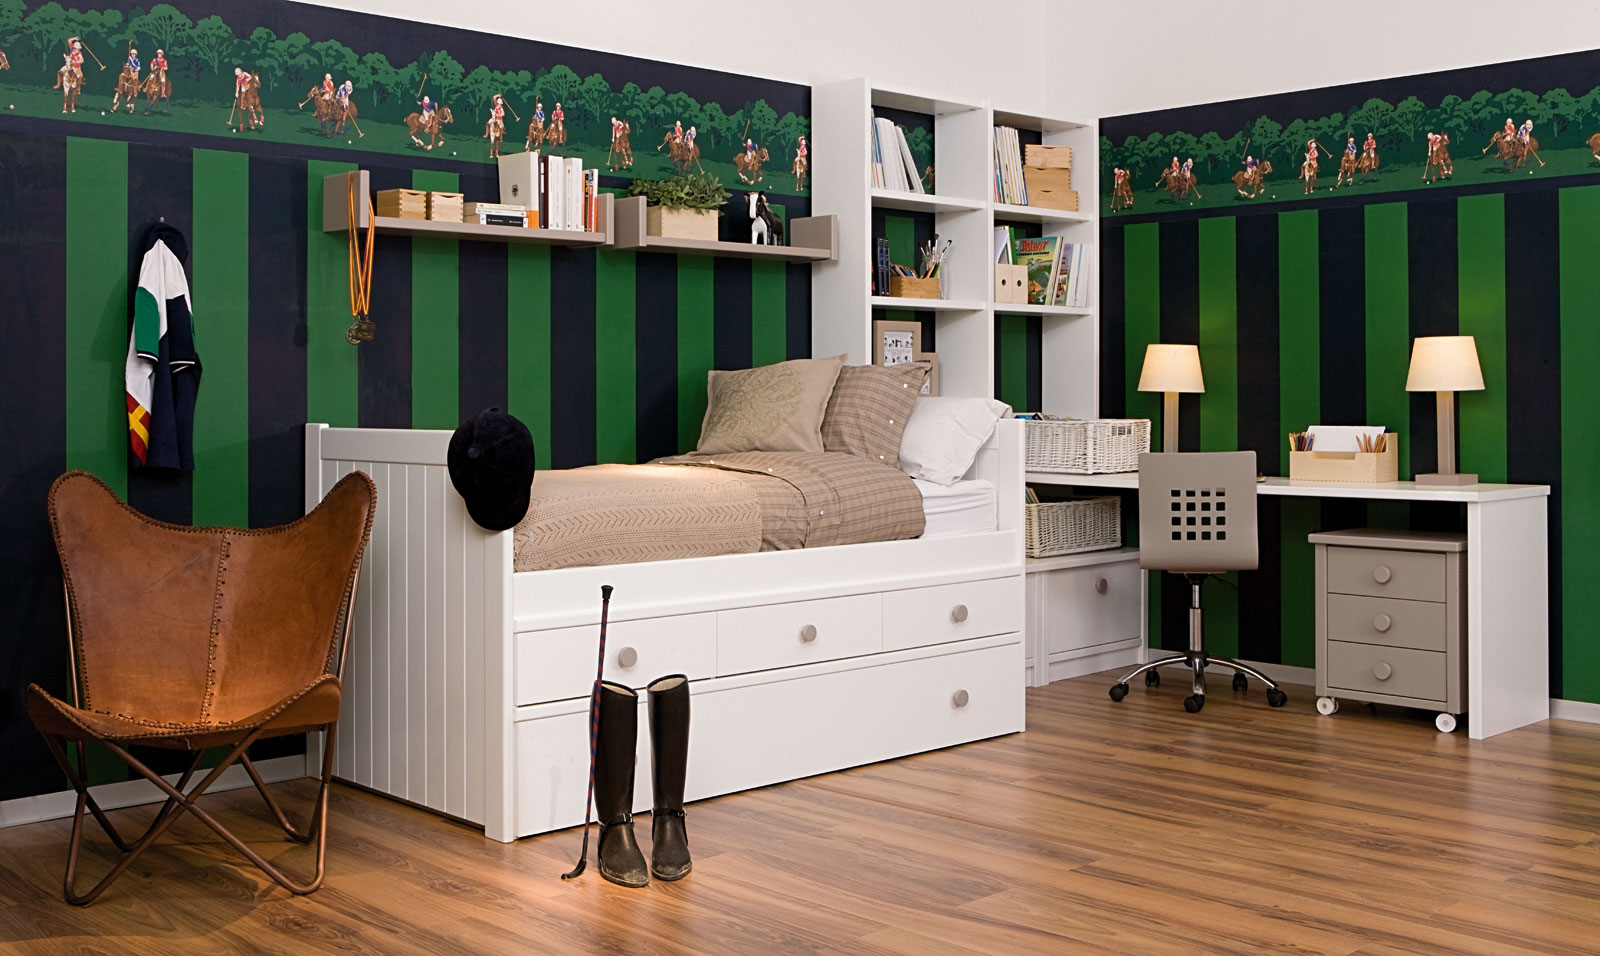 10 dormitorios juveniles modernos ideas para decorar - Paredes decoradas modernas ...